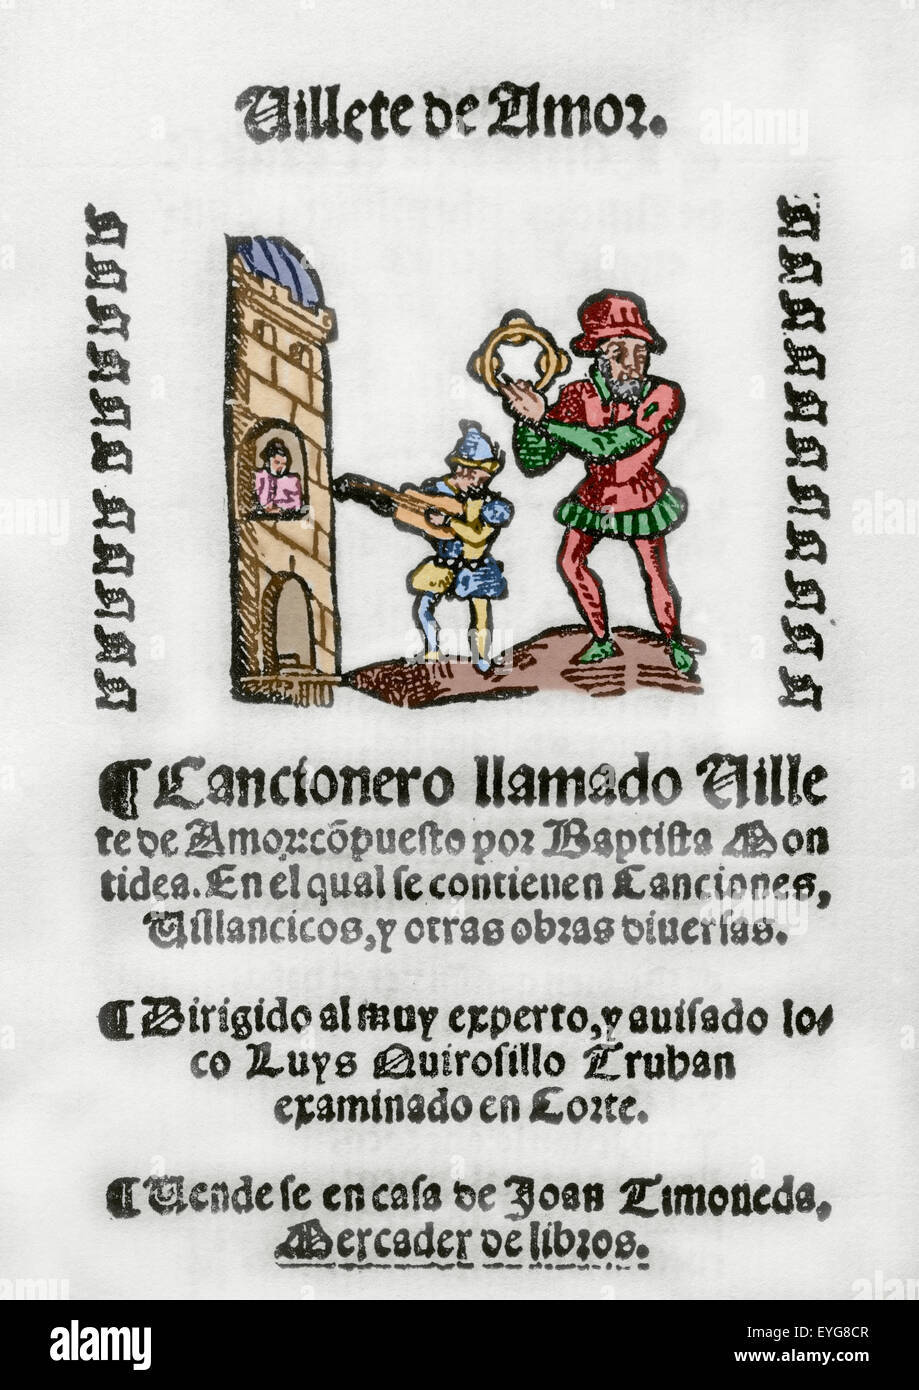 Villete de Amor by Baptista Montidea. Song book. Addressed to Luys Quirosillo Truhan. Colored engraving. Stock Photo